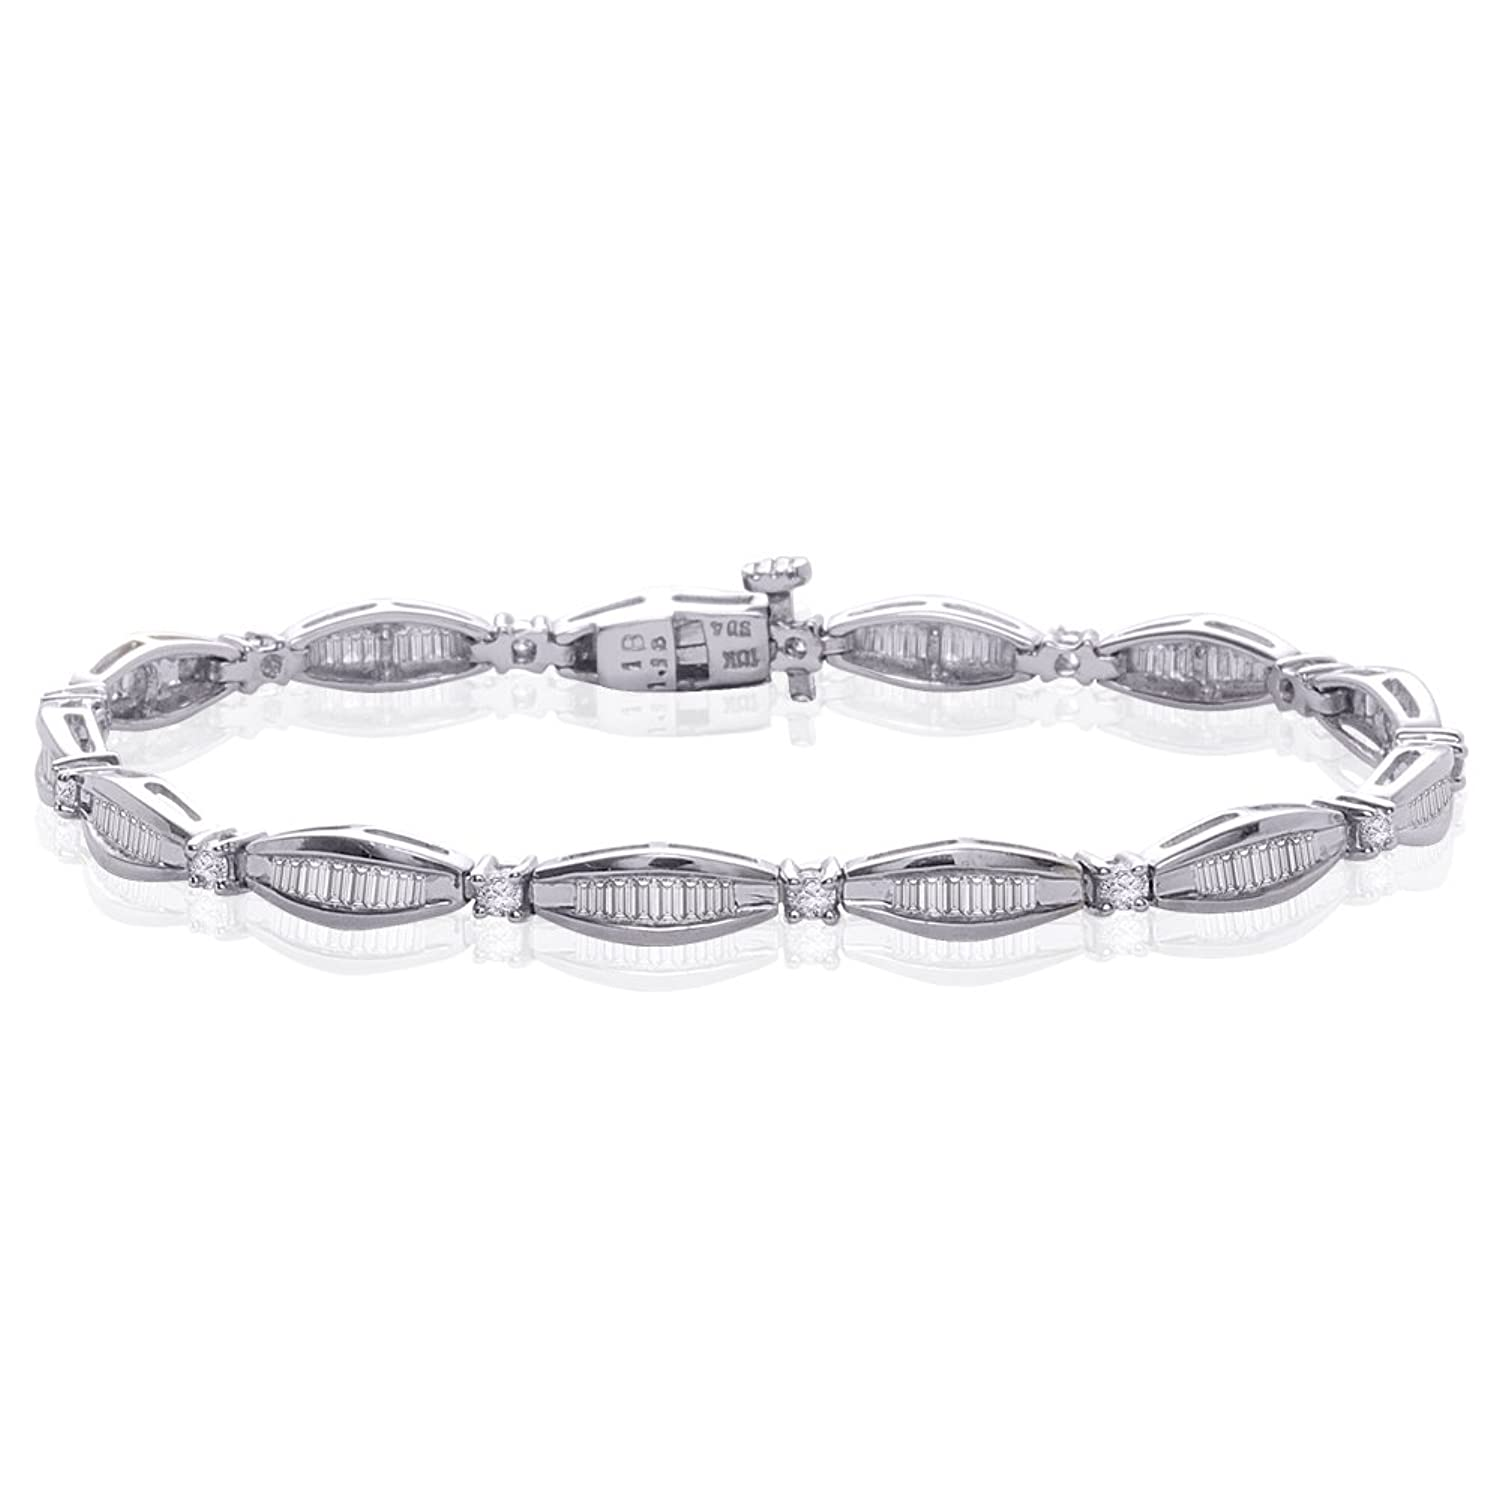 10K White Gold 2 ct. Round and Baguette Cut Diamond Bracelet